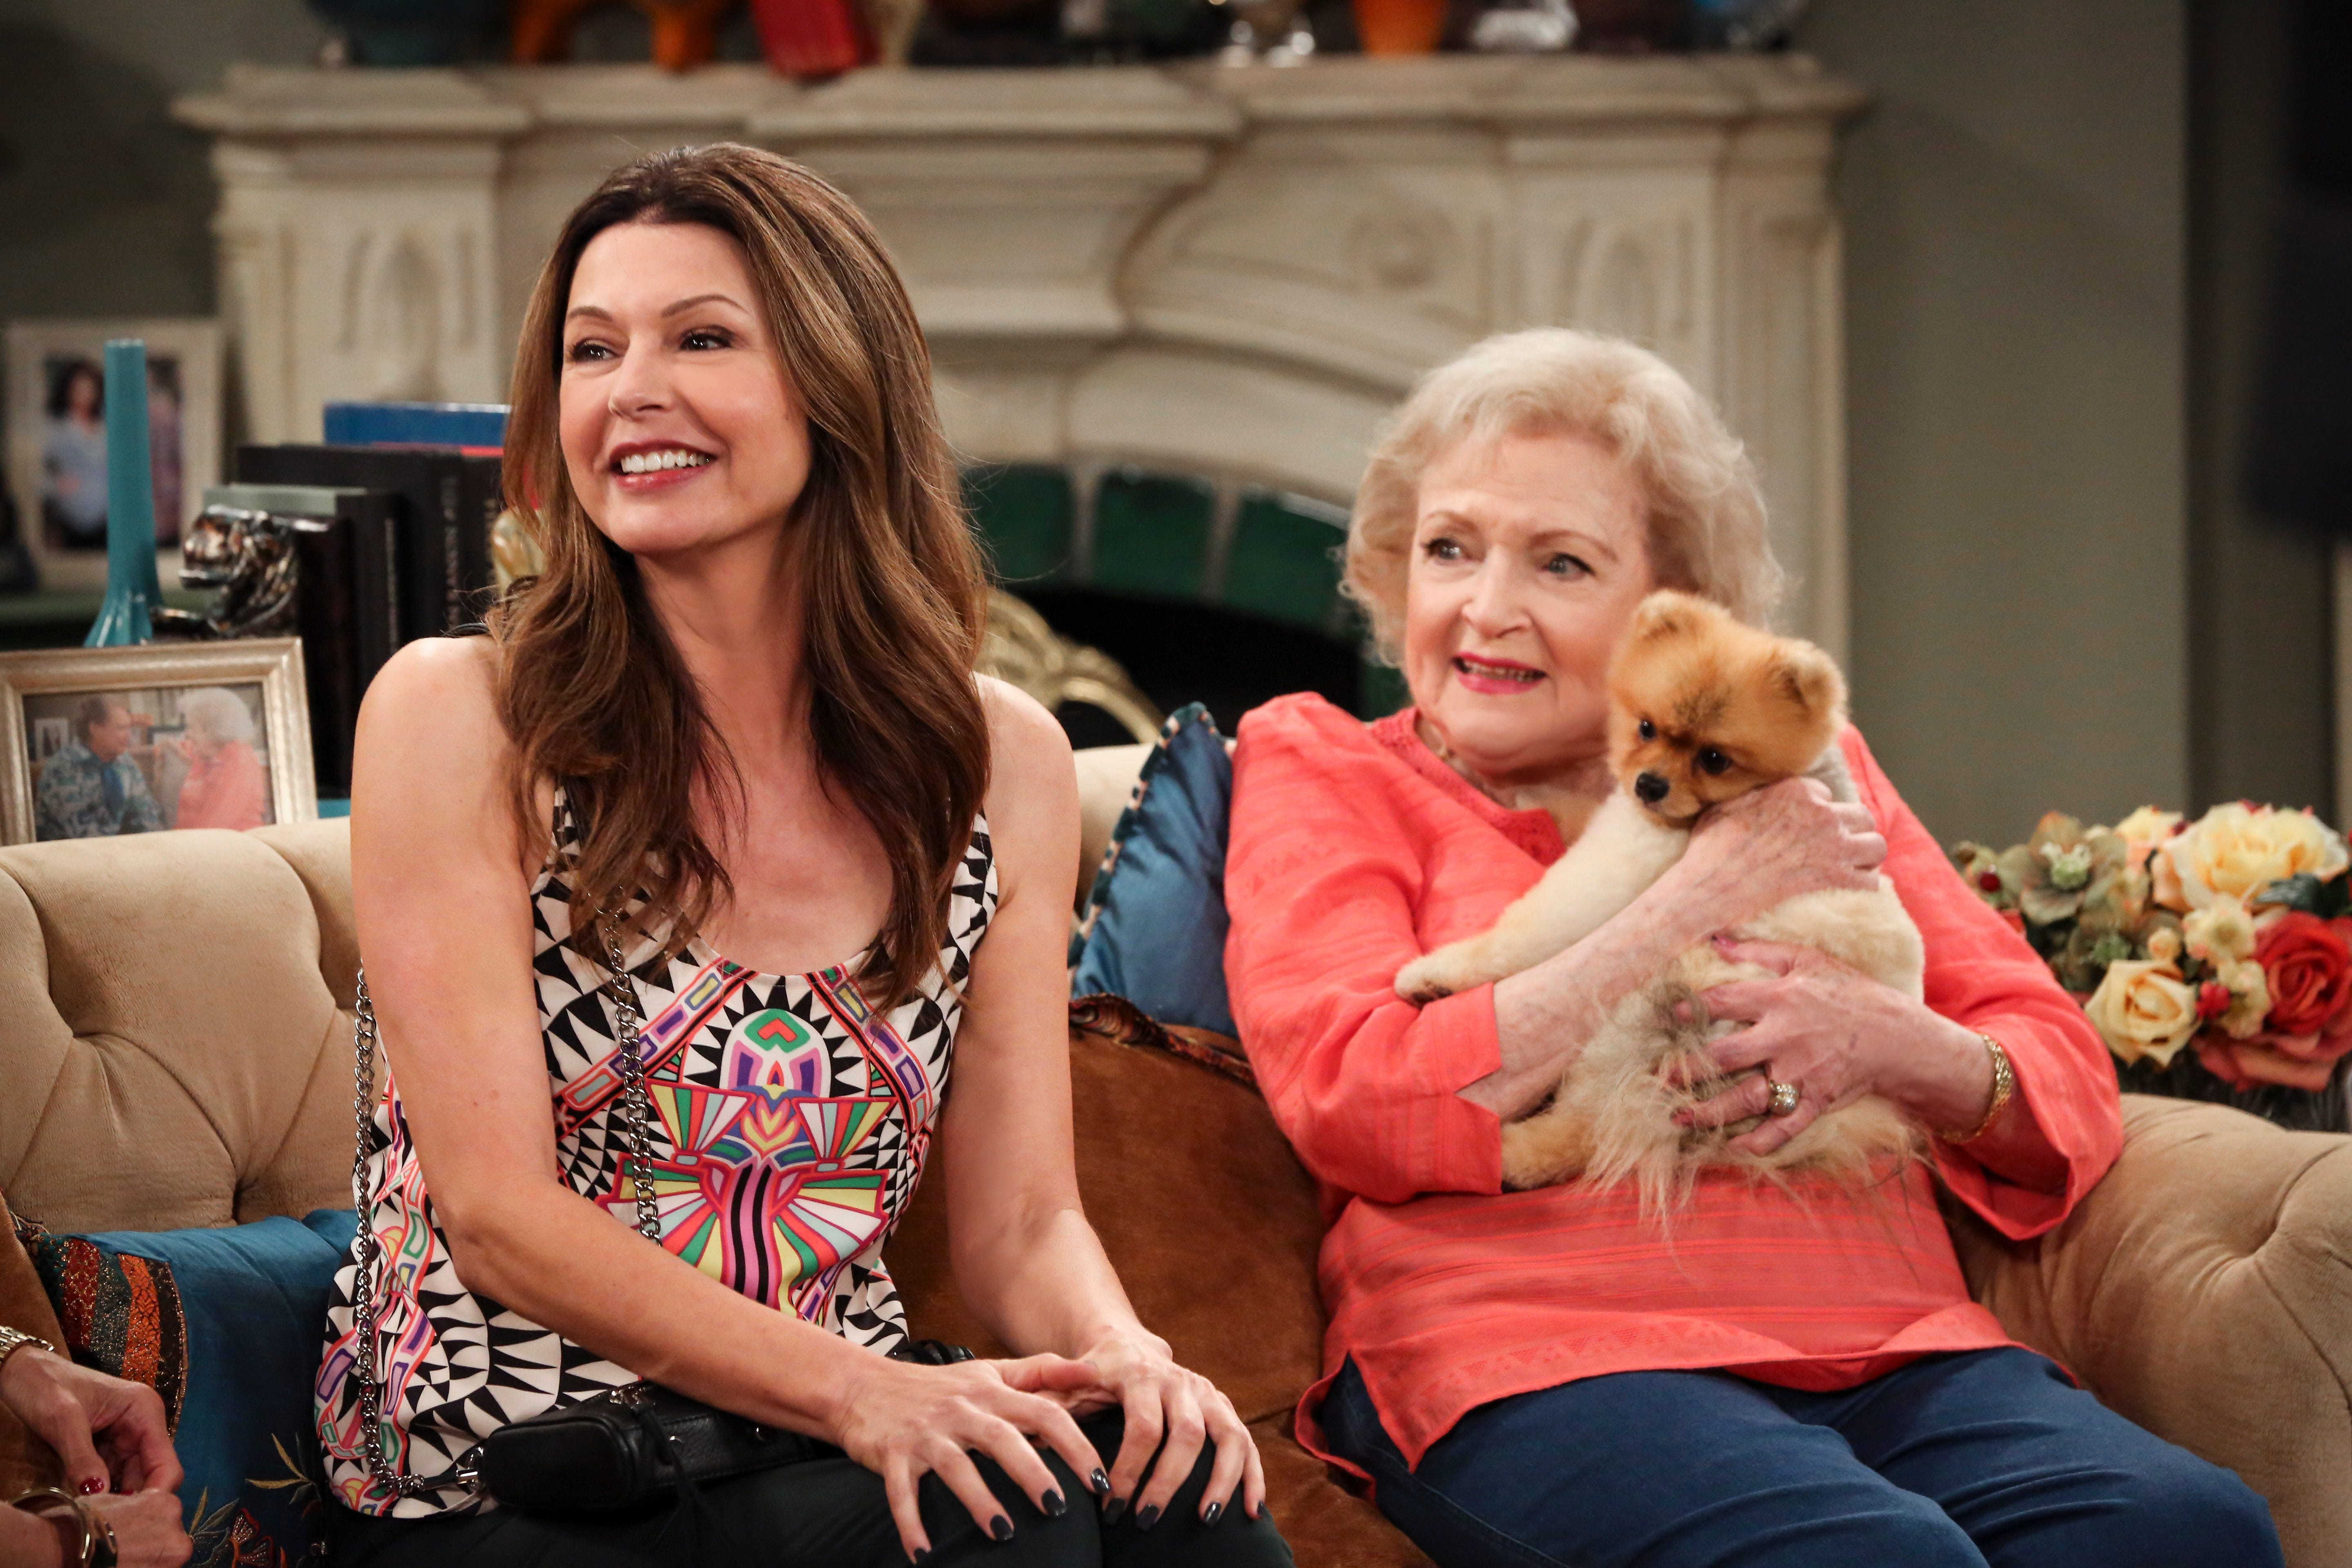 Breed of dog in hot in cleveland show